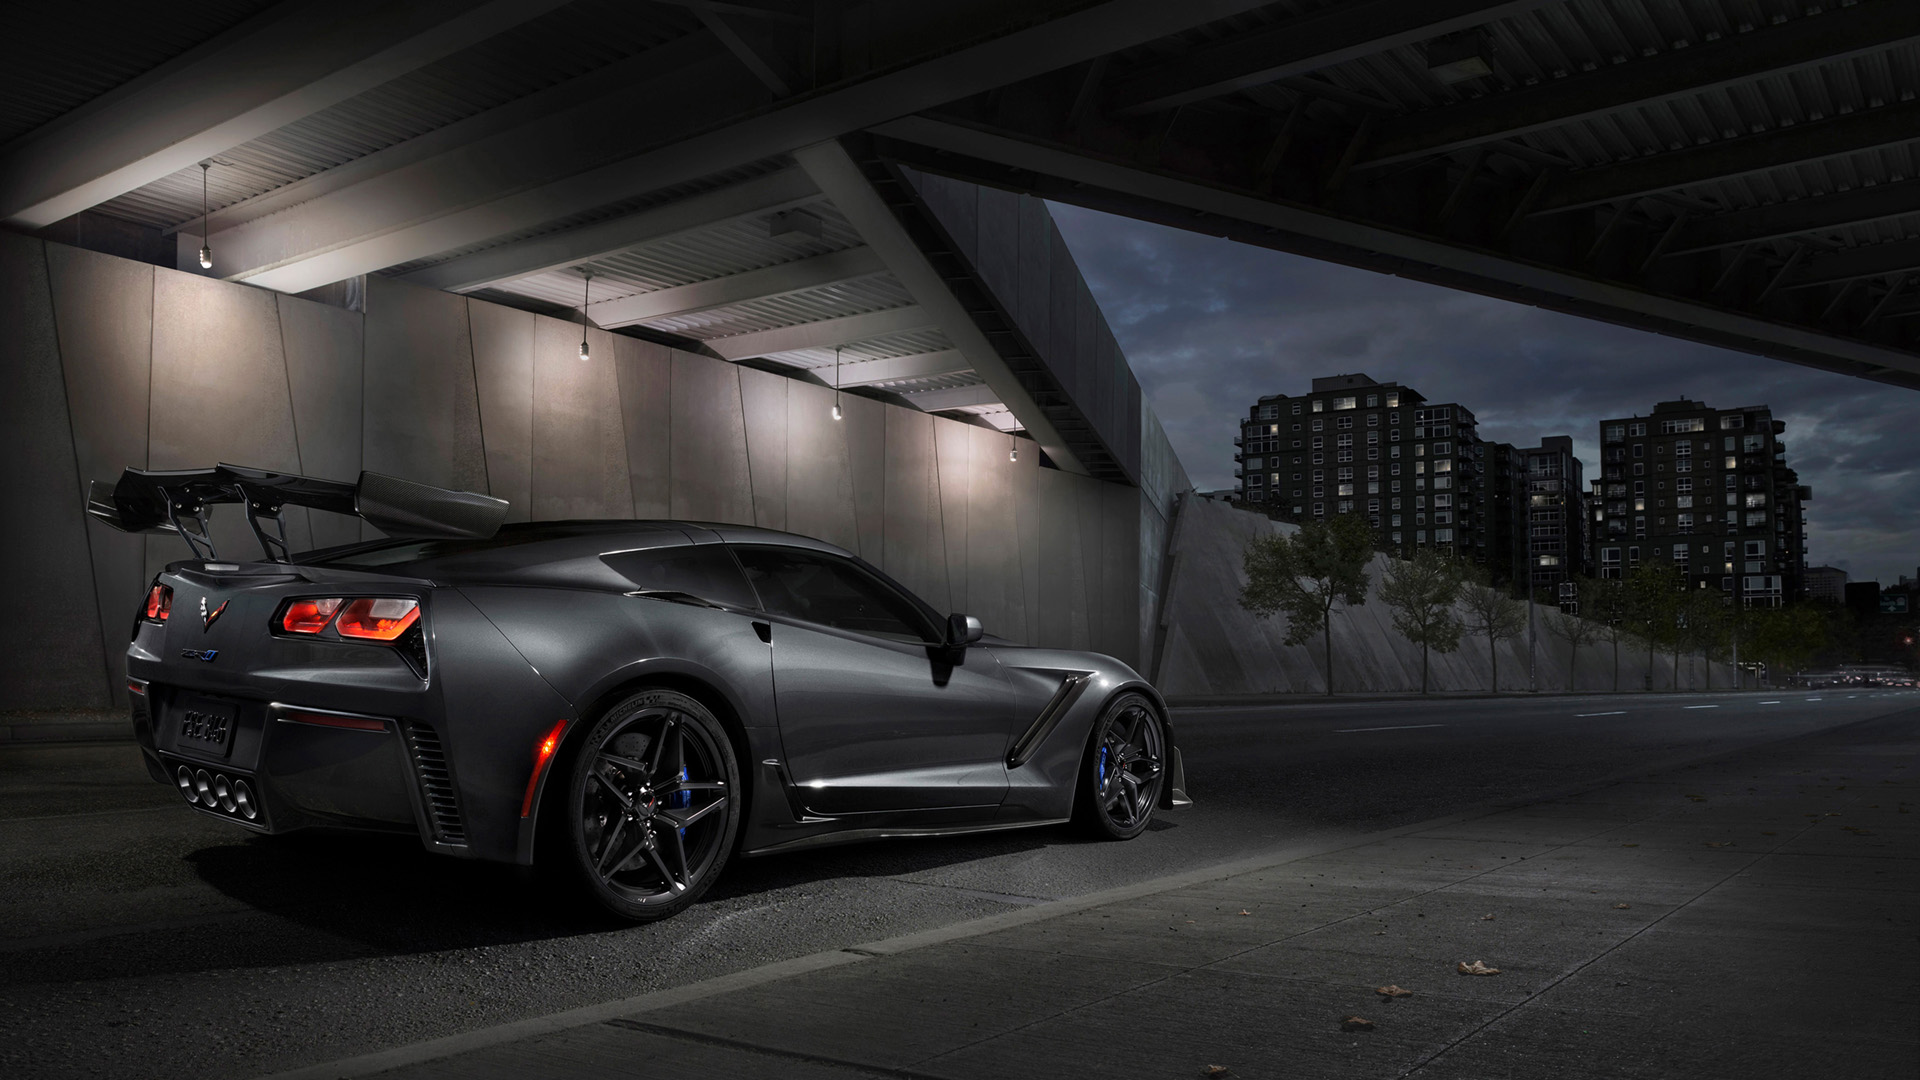 ZR1_02_Retouched.jpg